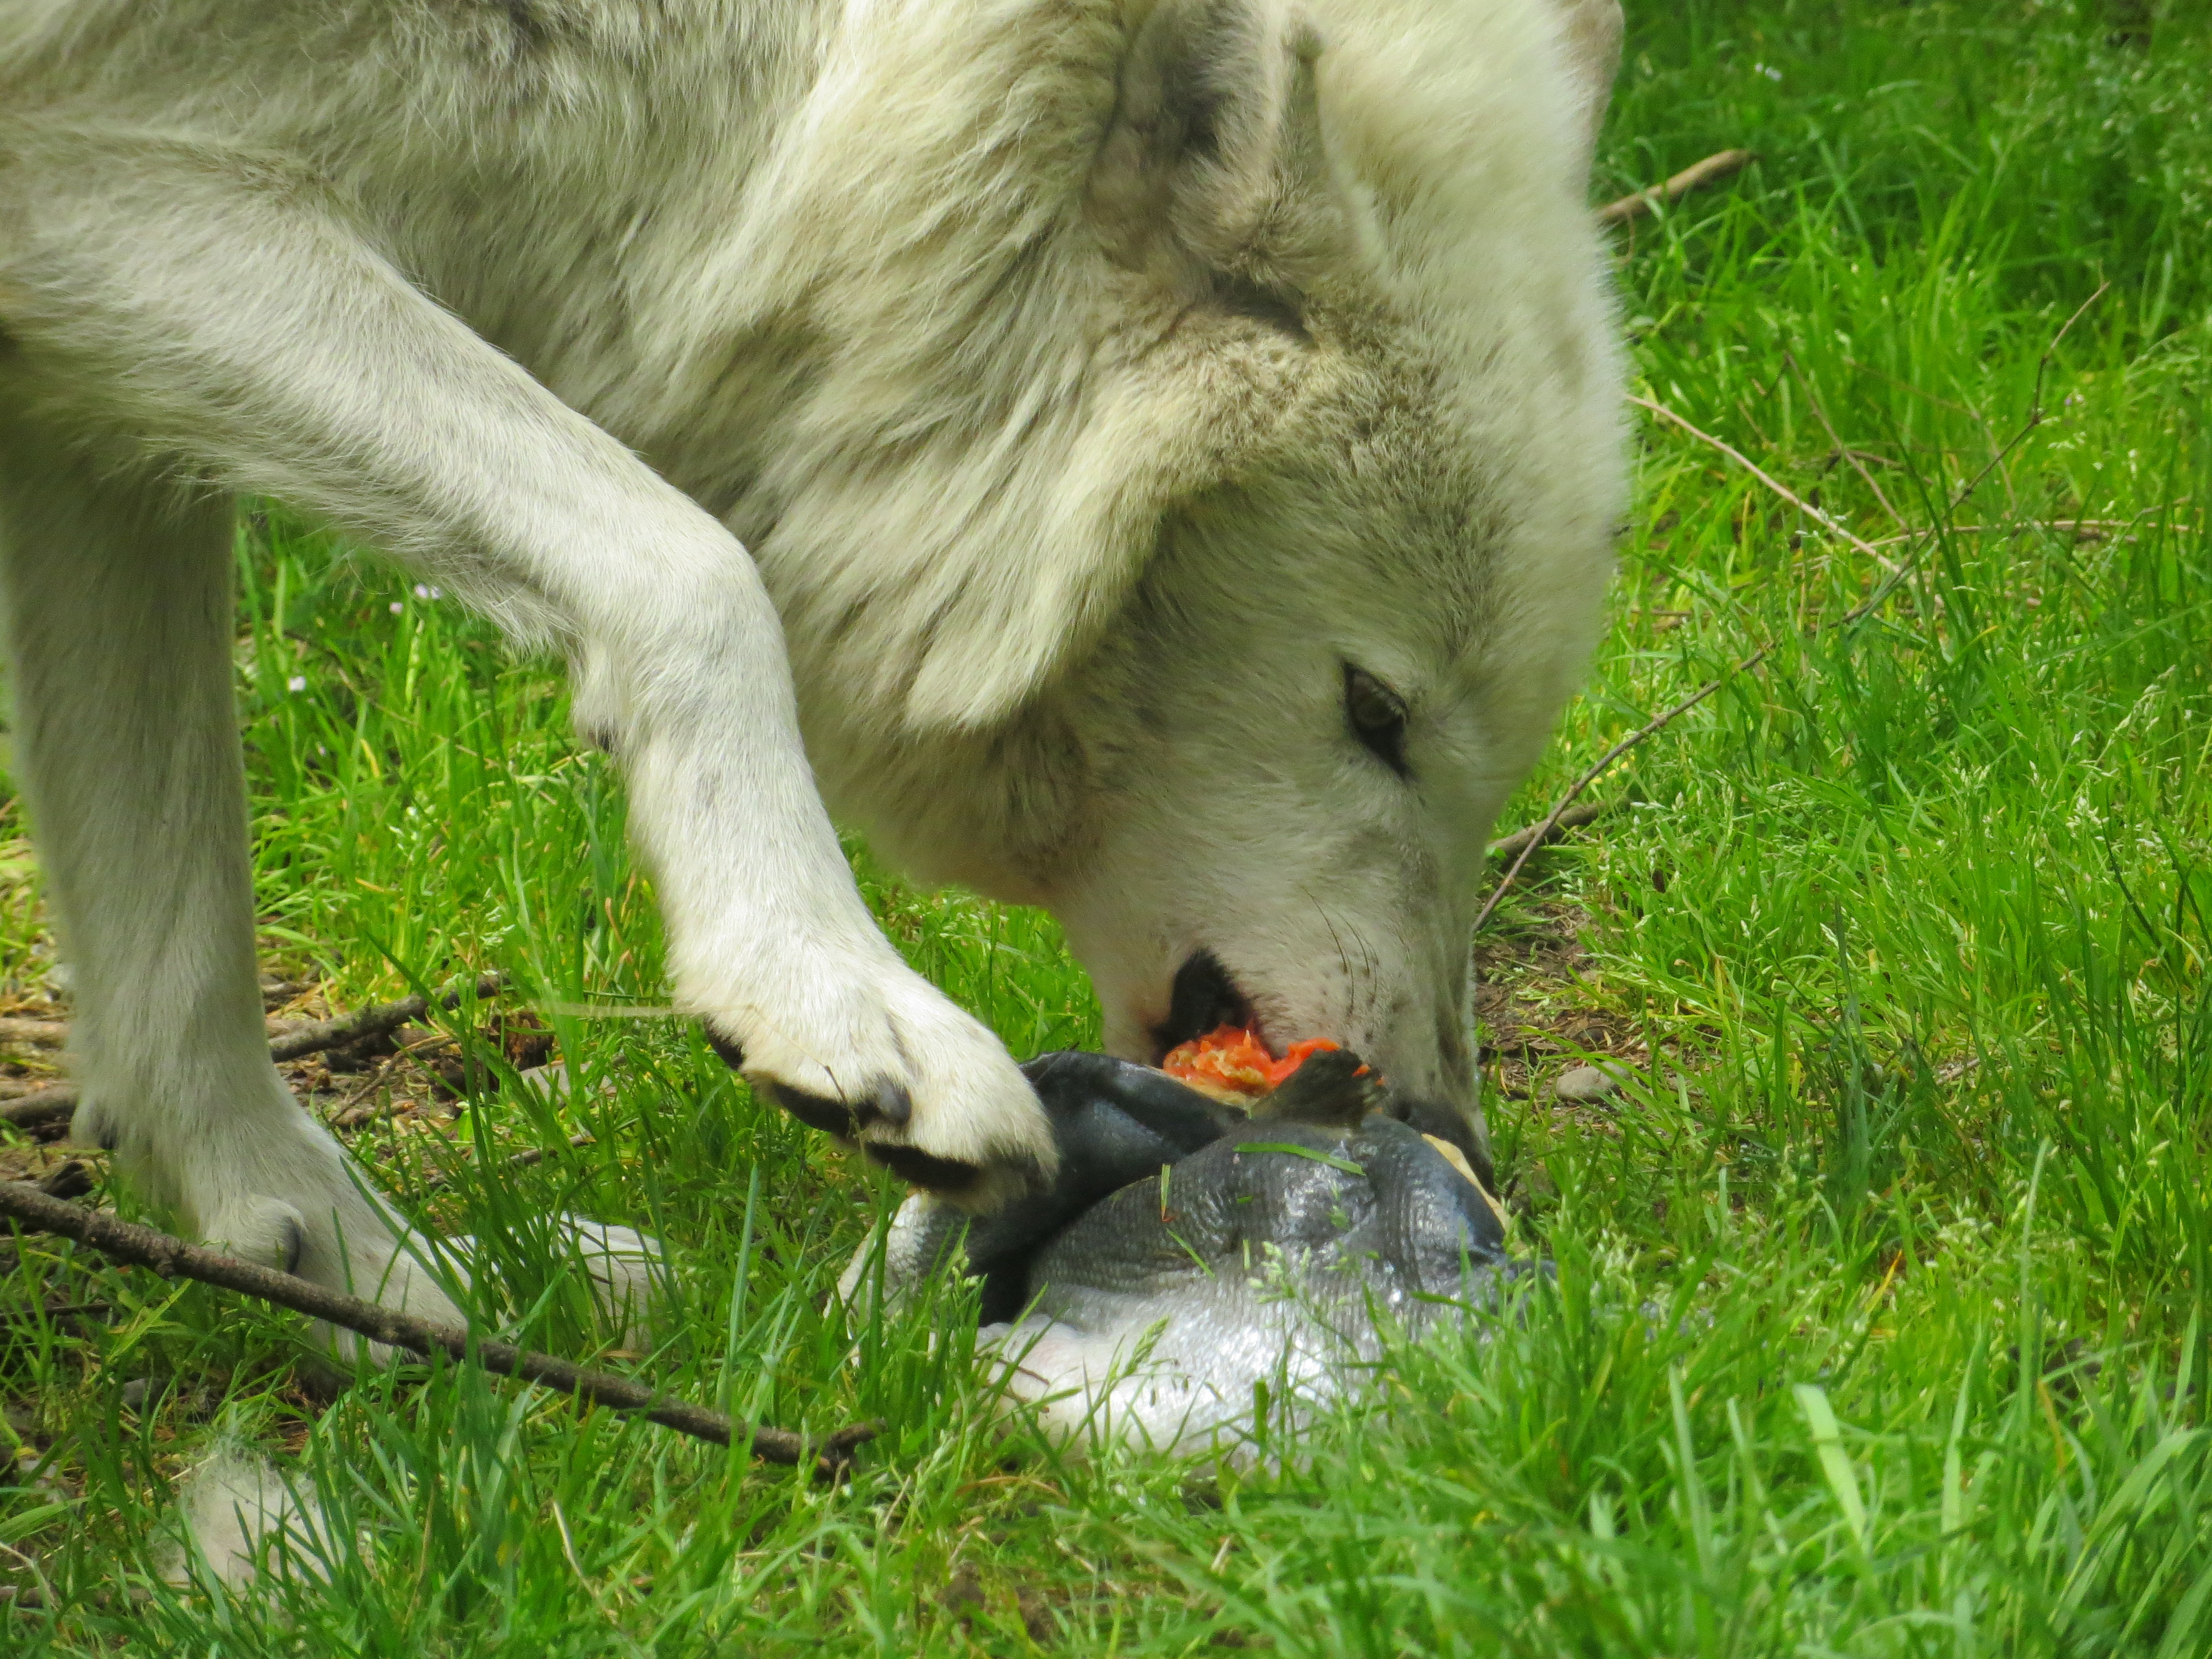 Wolf eating steak clipart jpg free Feeding the Wolves at Wolf Haven - Wolf Haven International jpg free